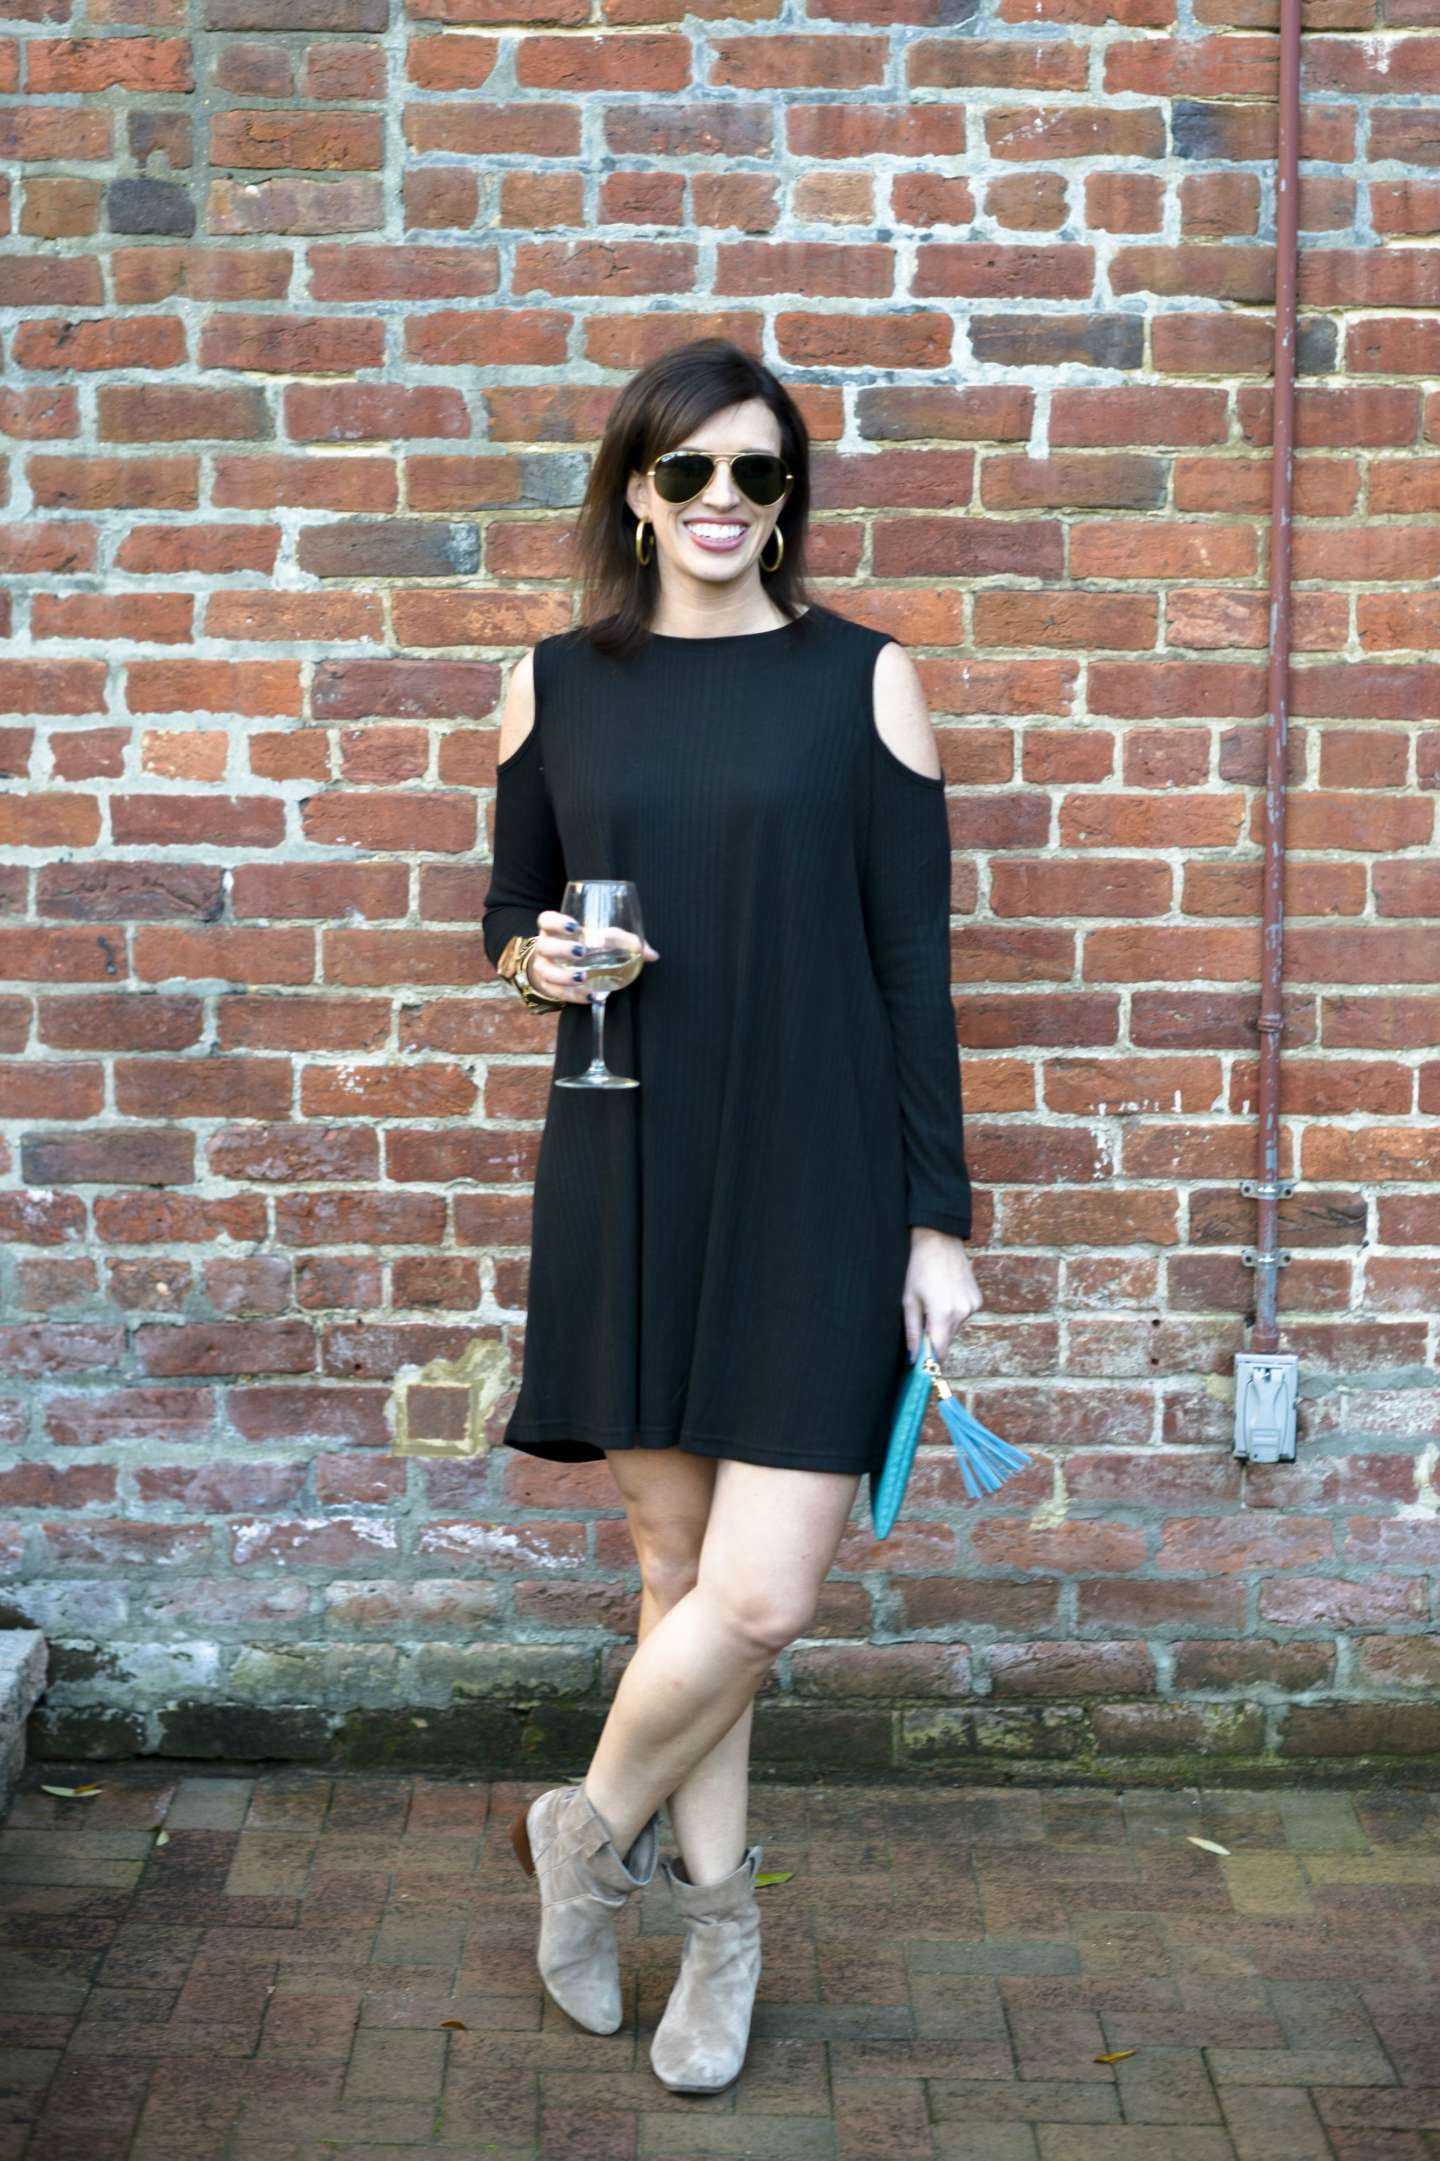 Cold Shoulder Dress for Max's on Broad - I'm Fixin' To - @mbg0112